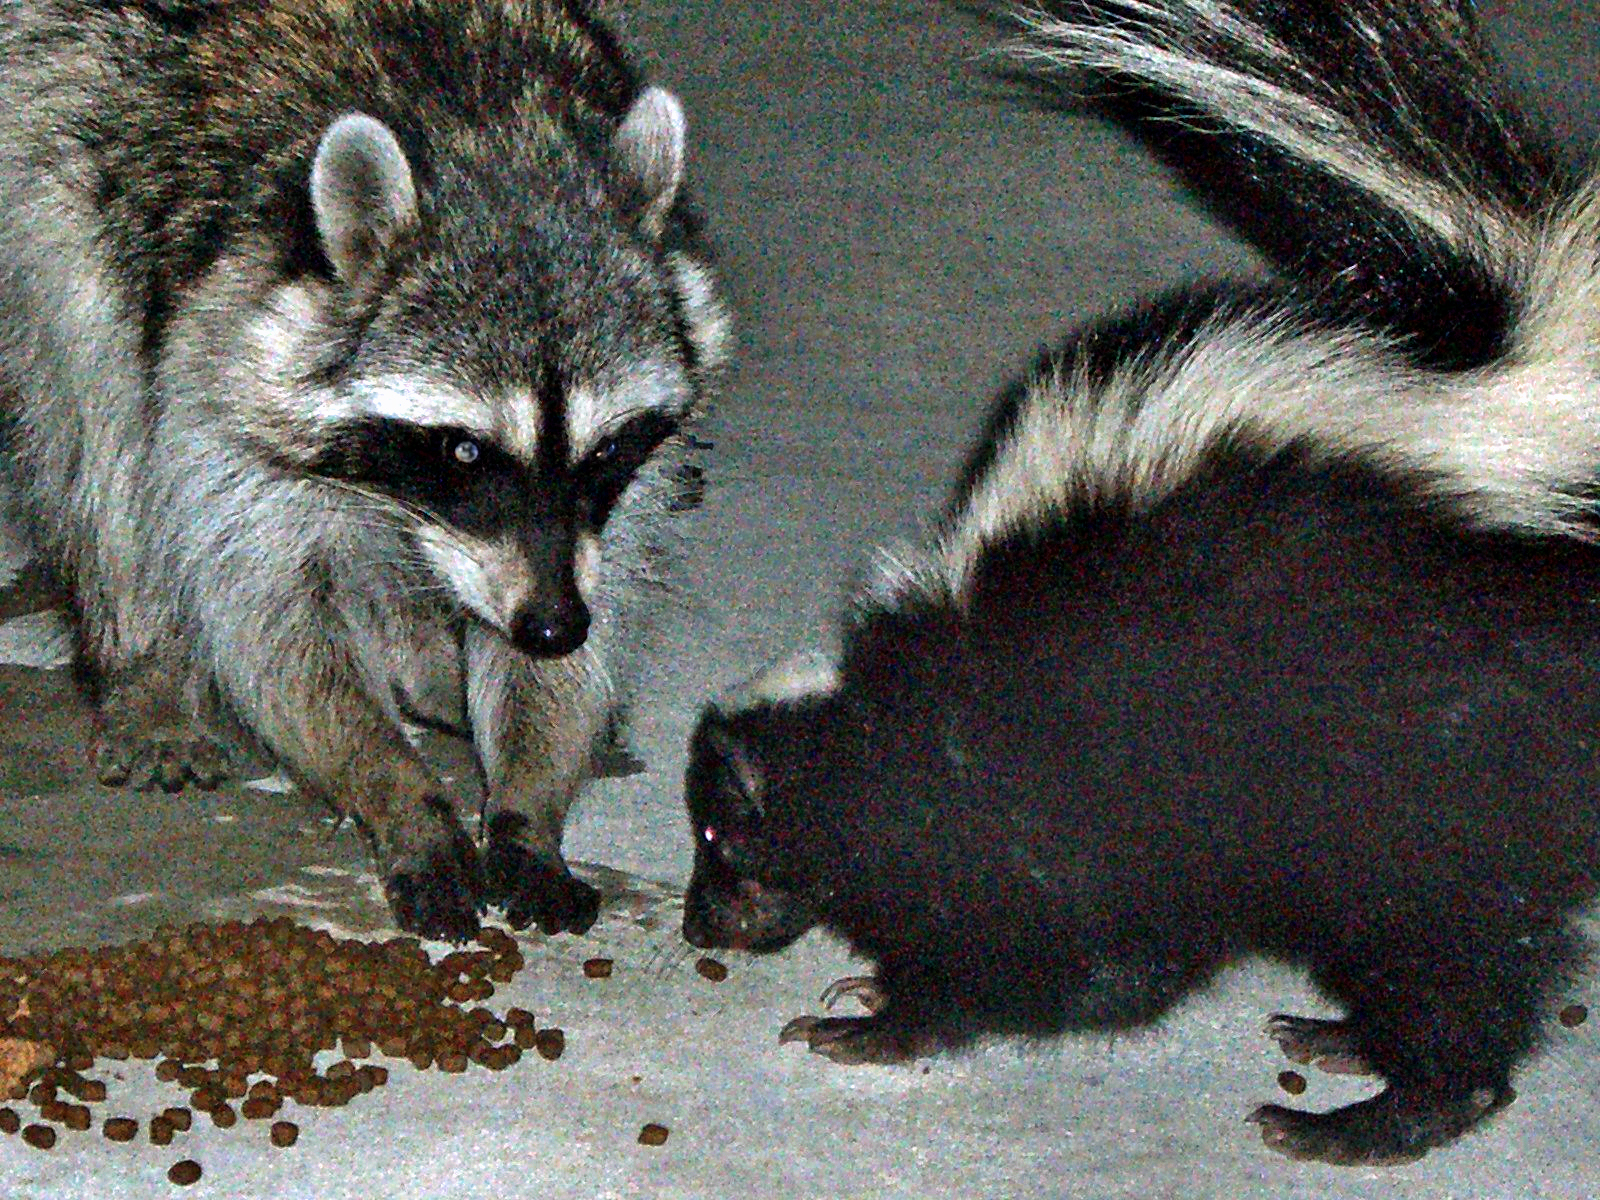 Skunk and Raccoon